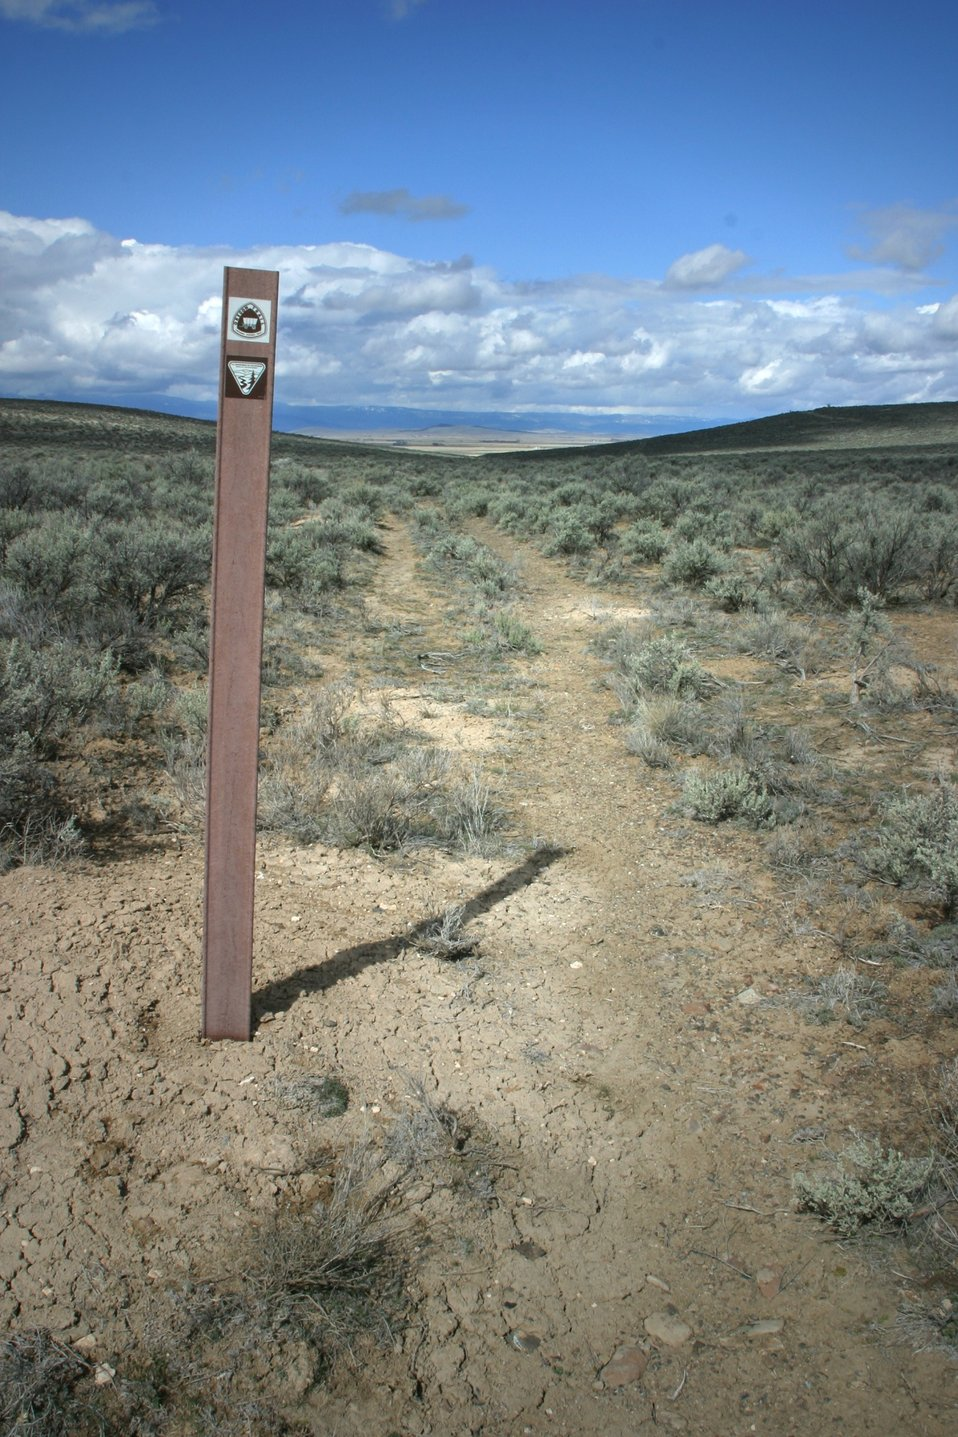 Oregon Trail ruts below the National Historic Oregon Trail Interpretive Center.